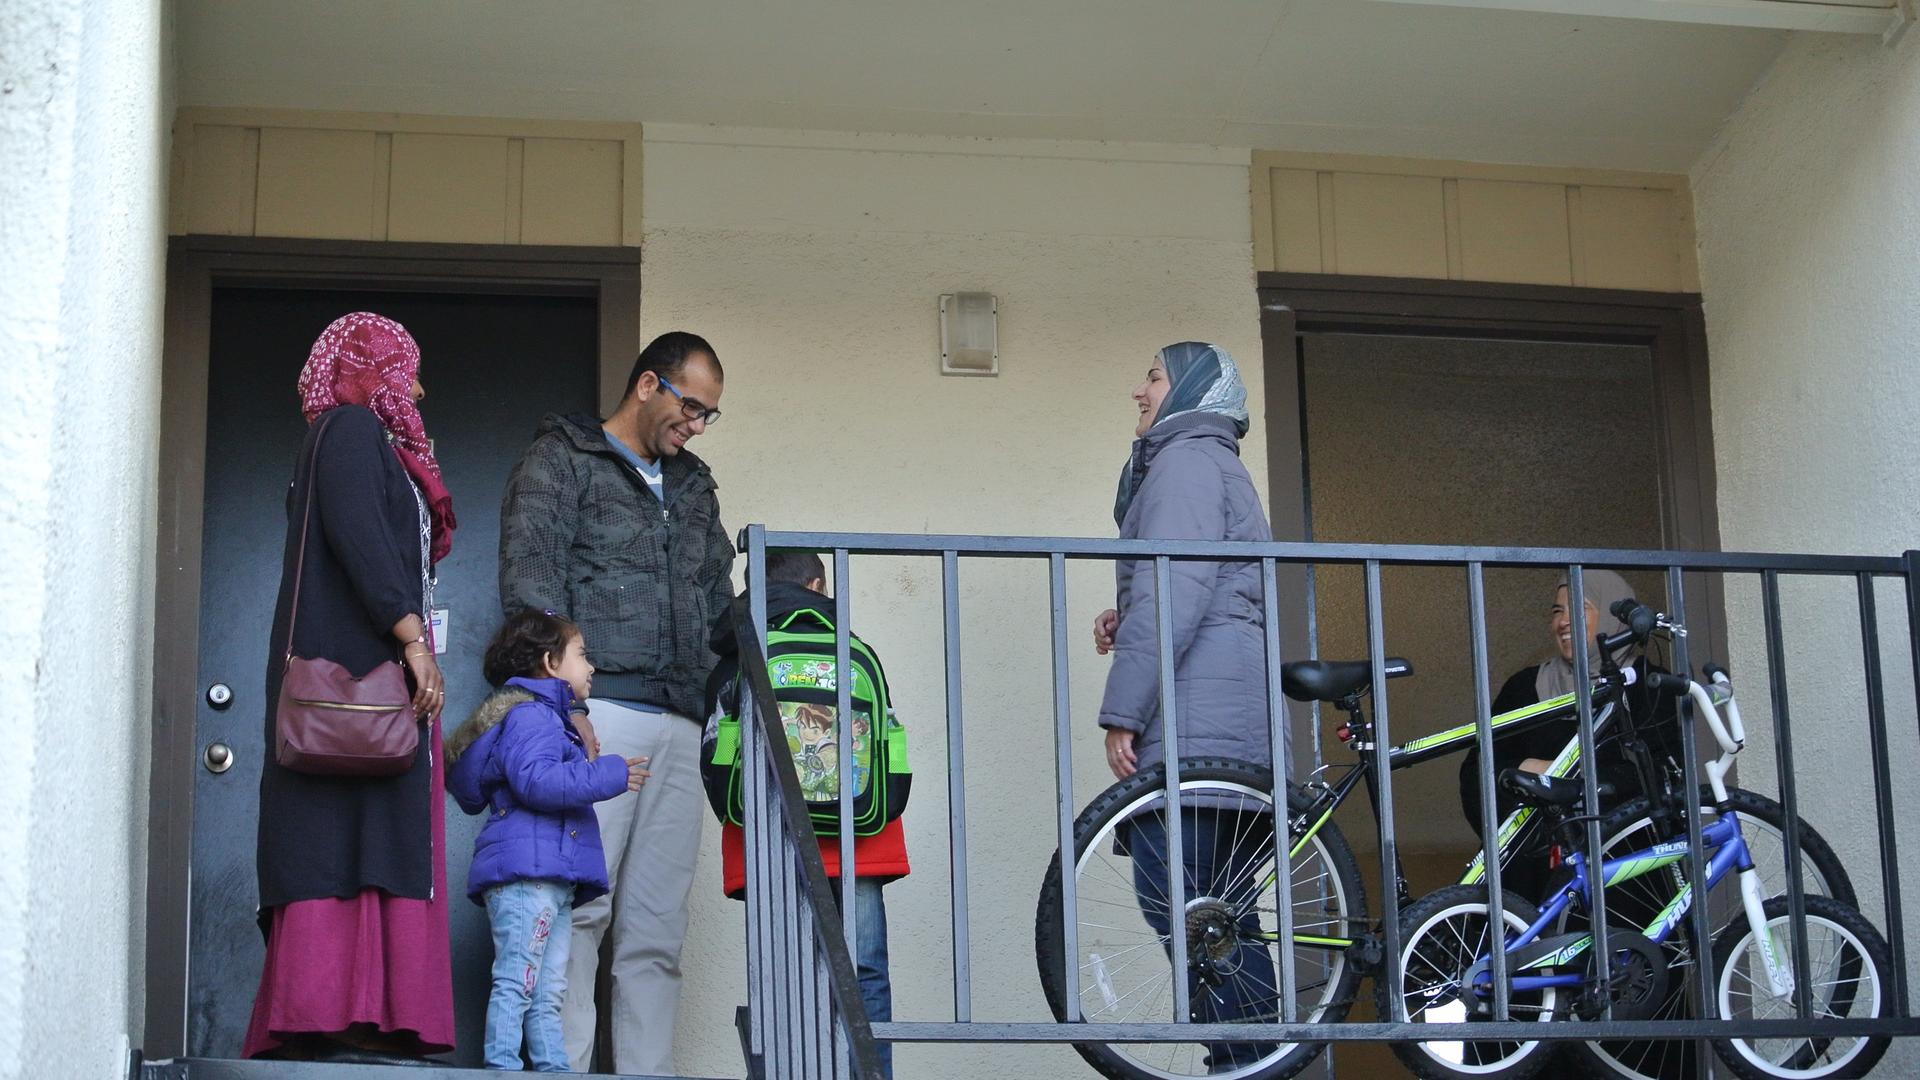 Tamam Al Sharaa and his family at their apartment in North Dallas, Texas.